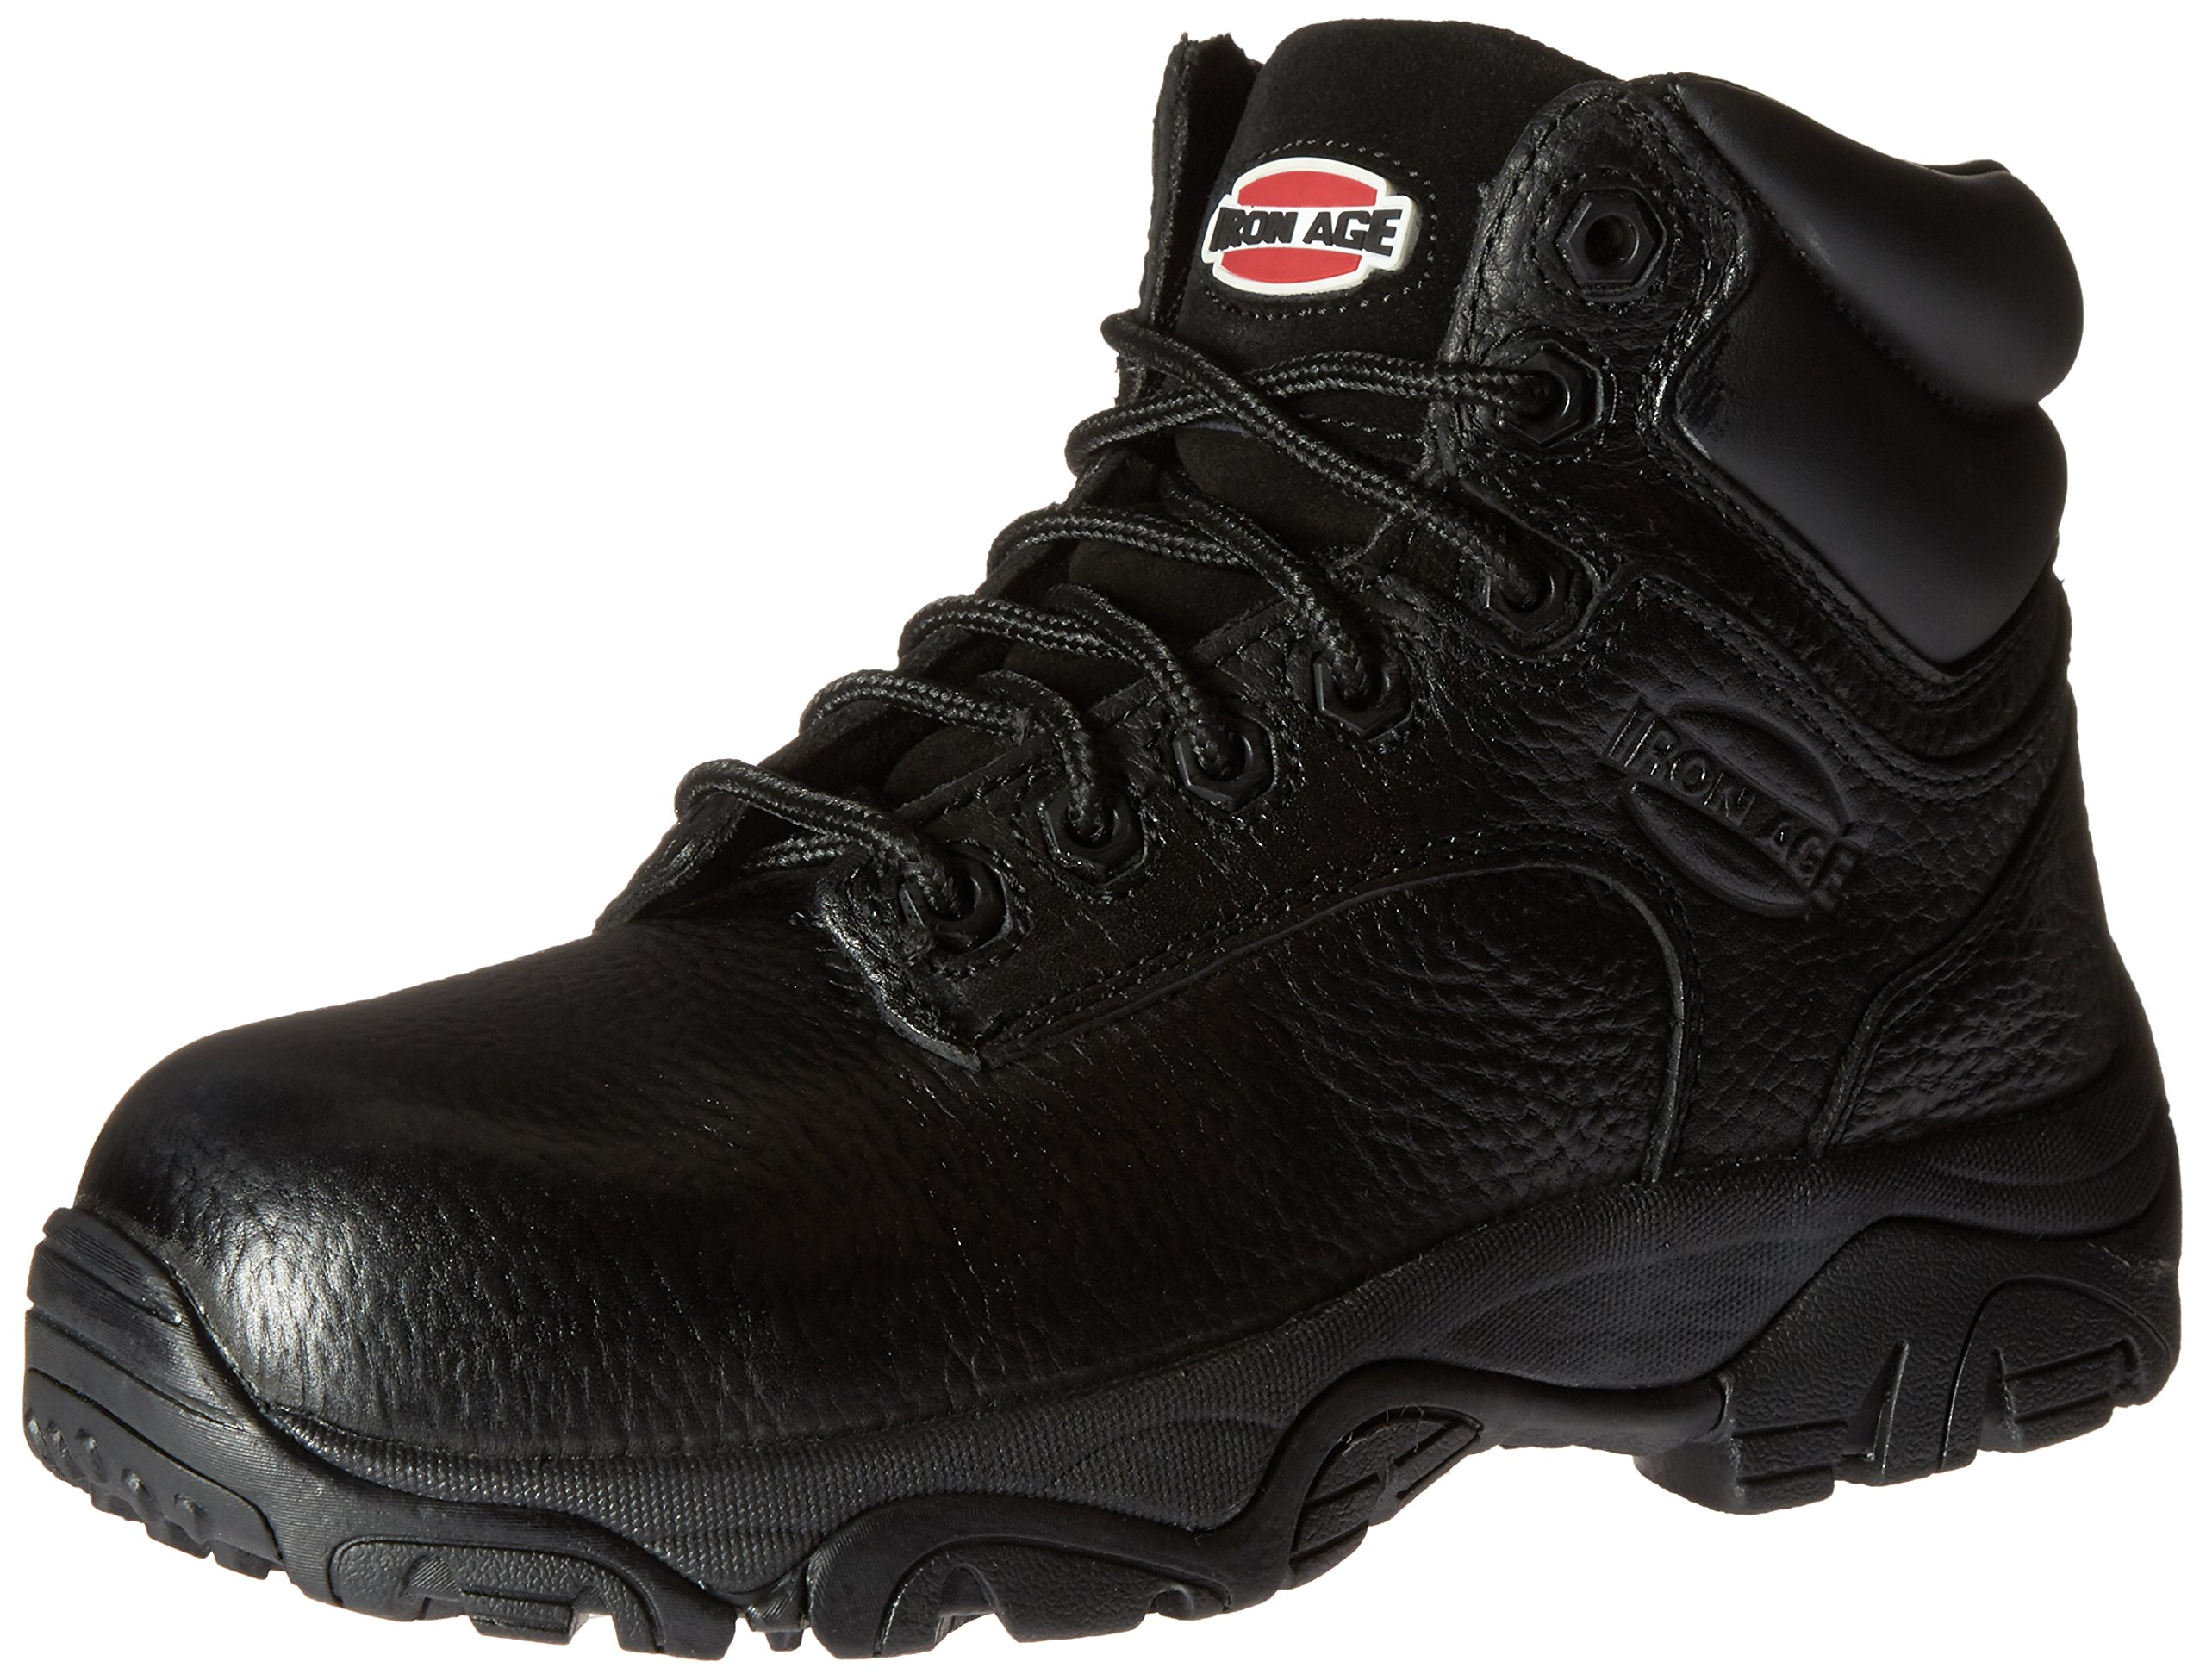 Iron Age Women's IA507 Trencher Fire and Safety Shoe, Black, 6 M US by Iron Age